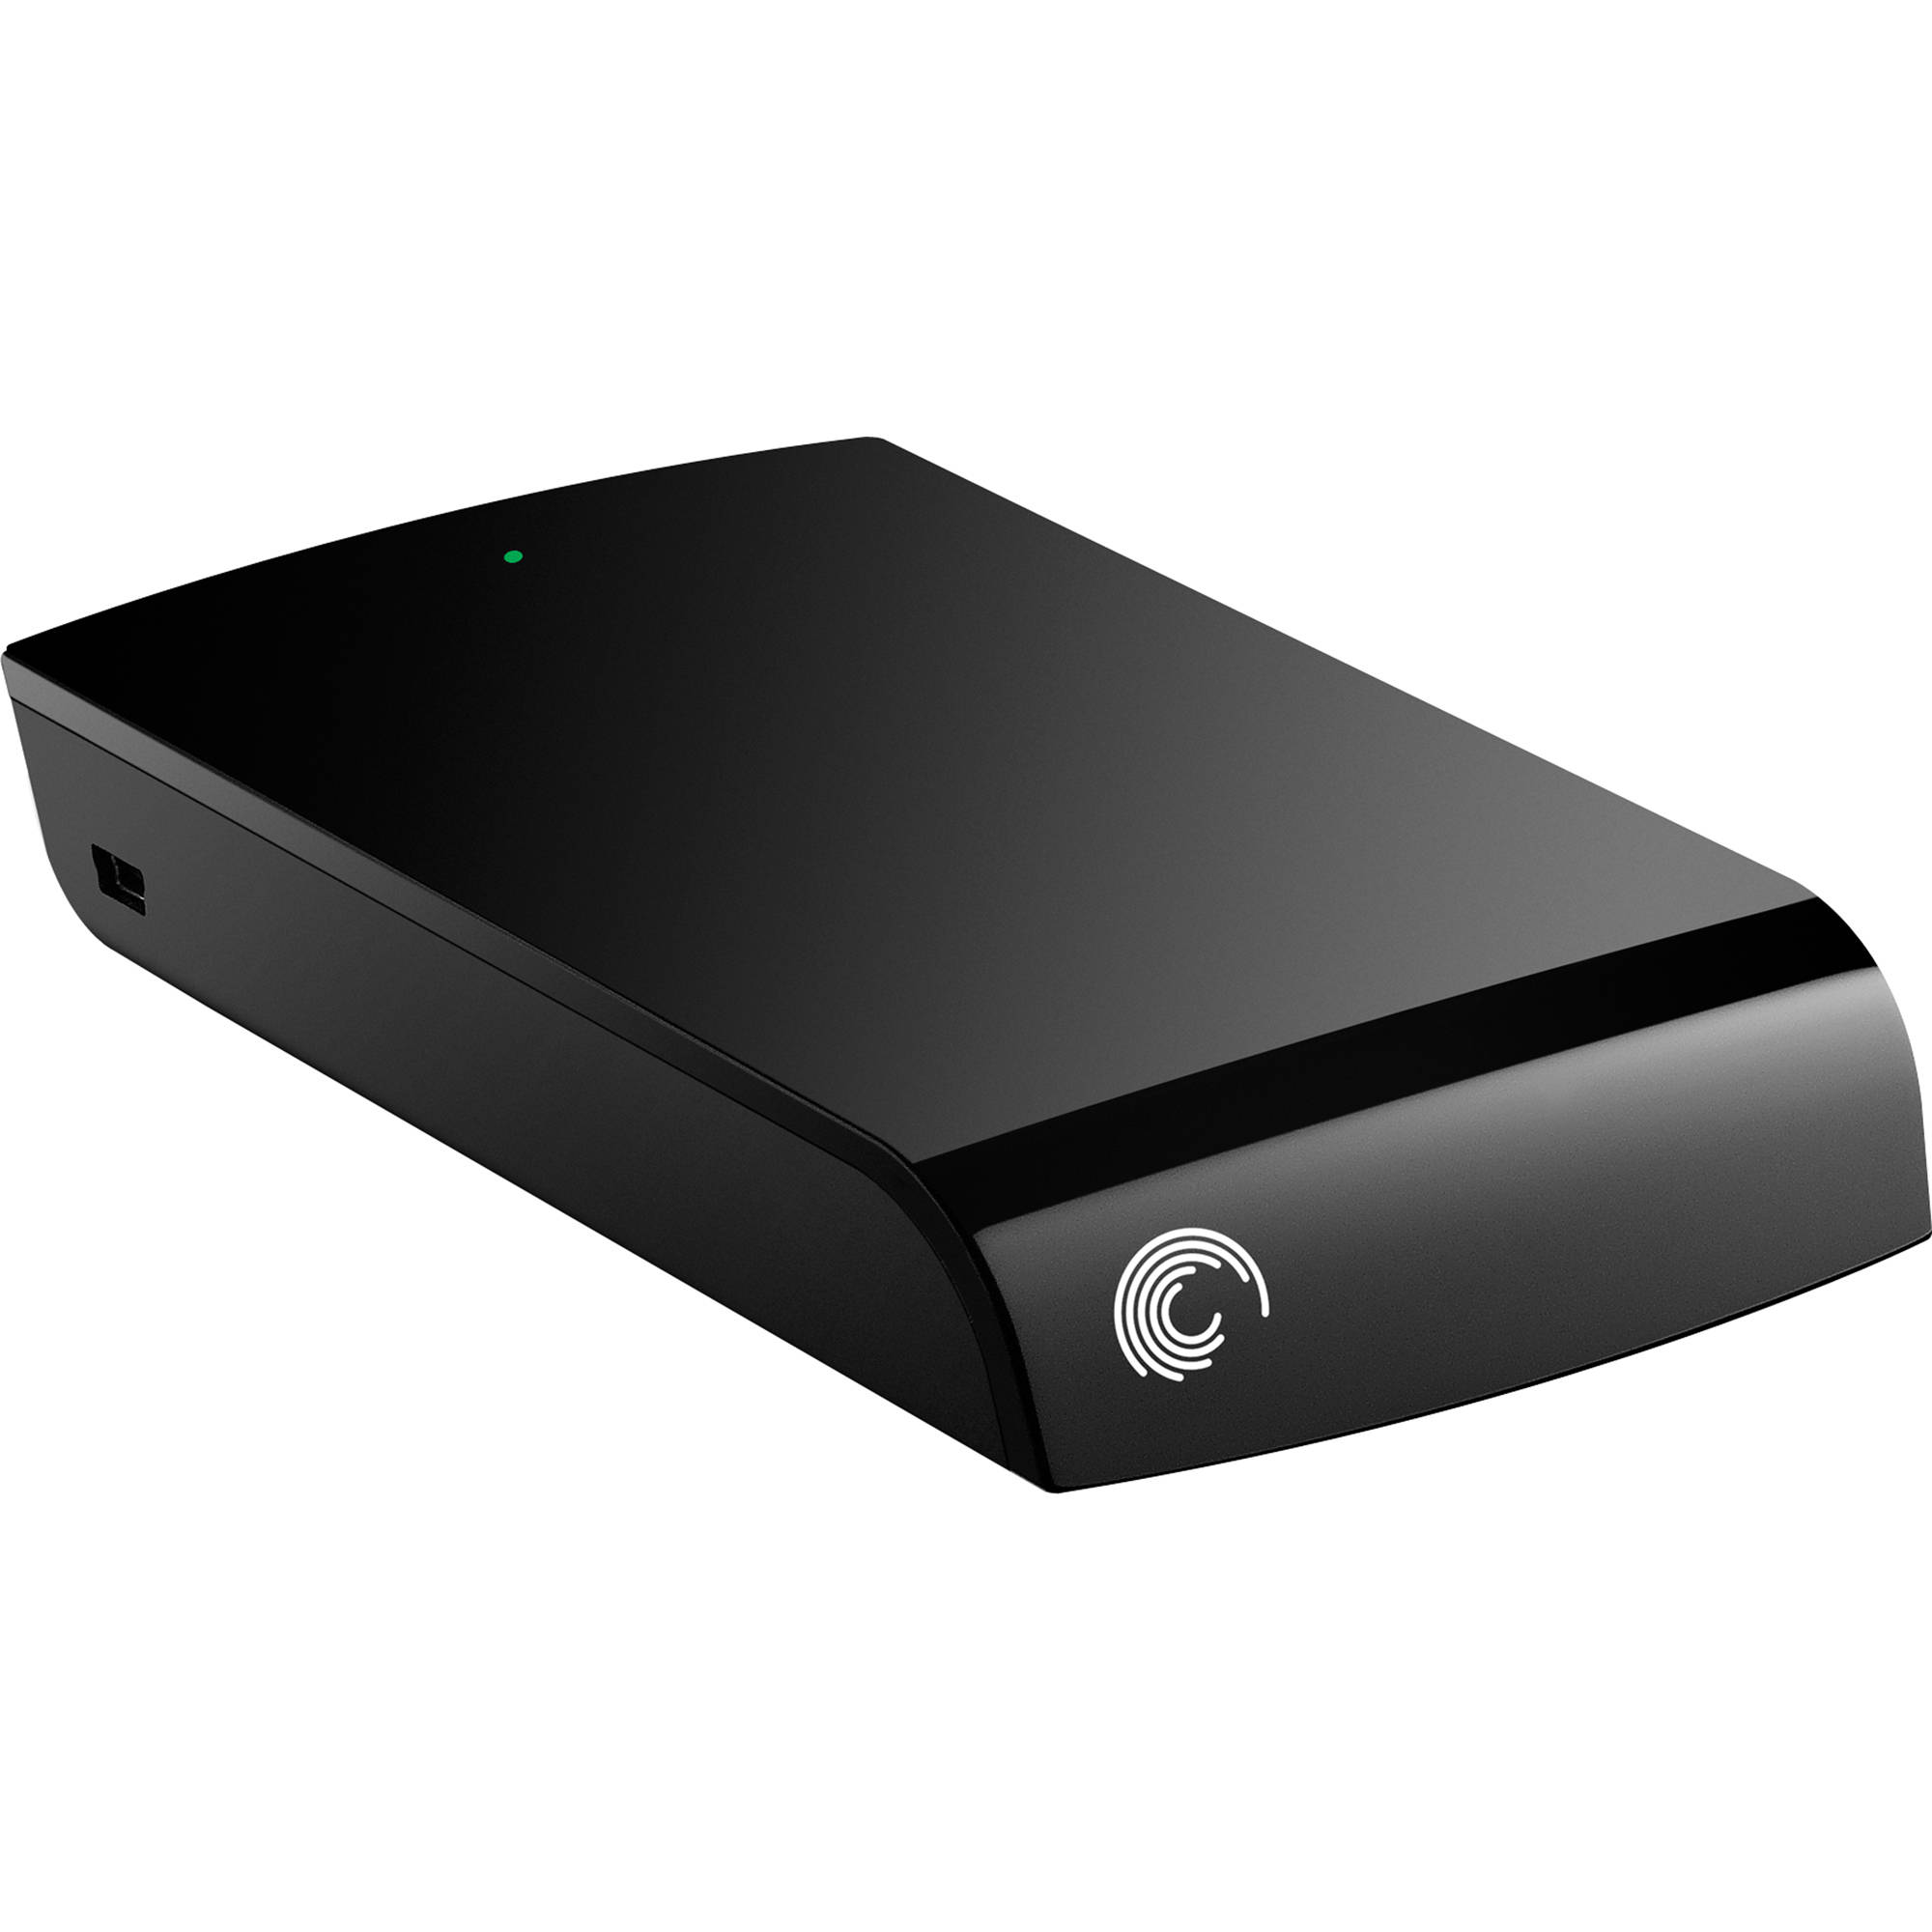 seagate 1.5 tb external hard drive review